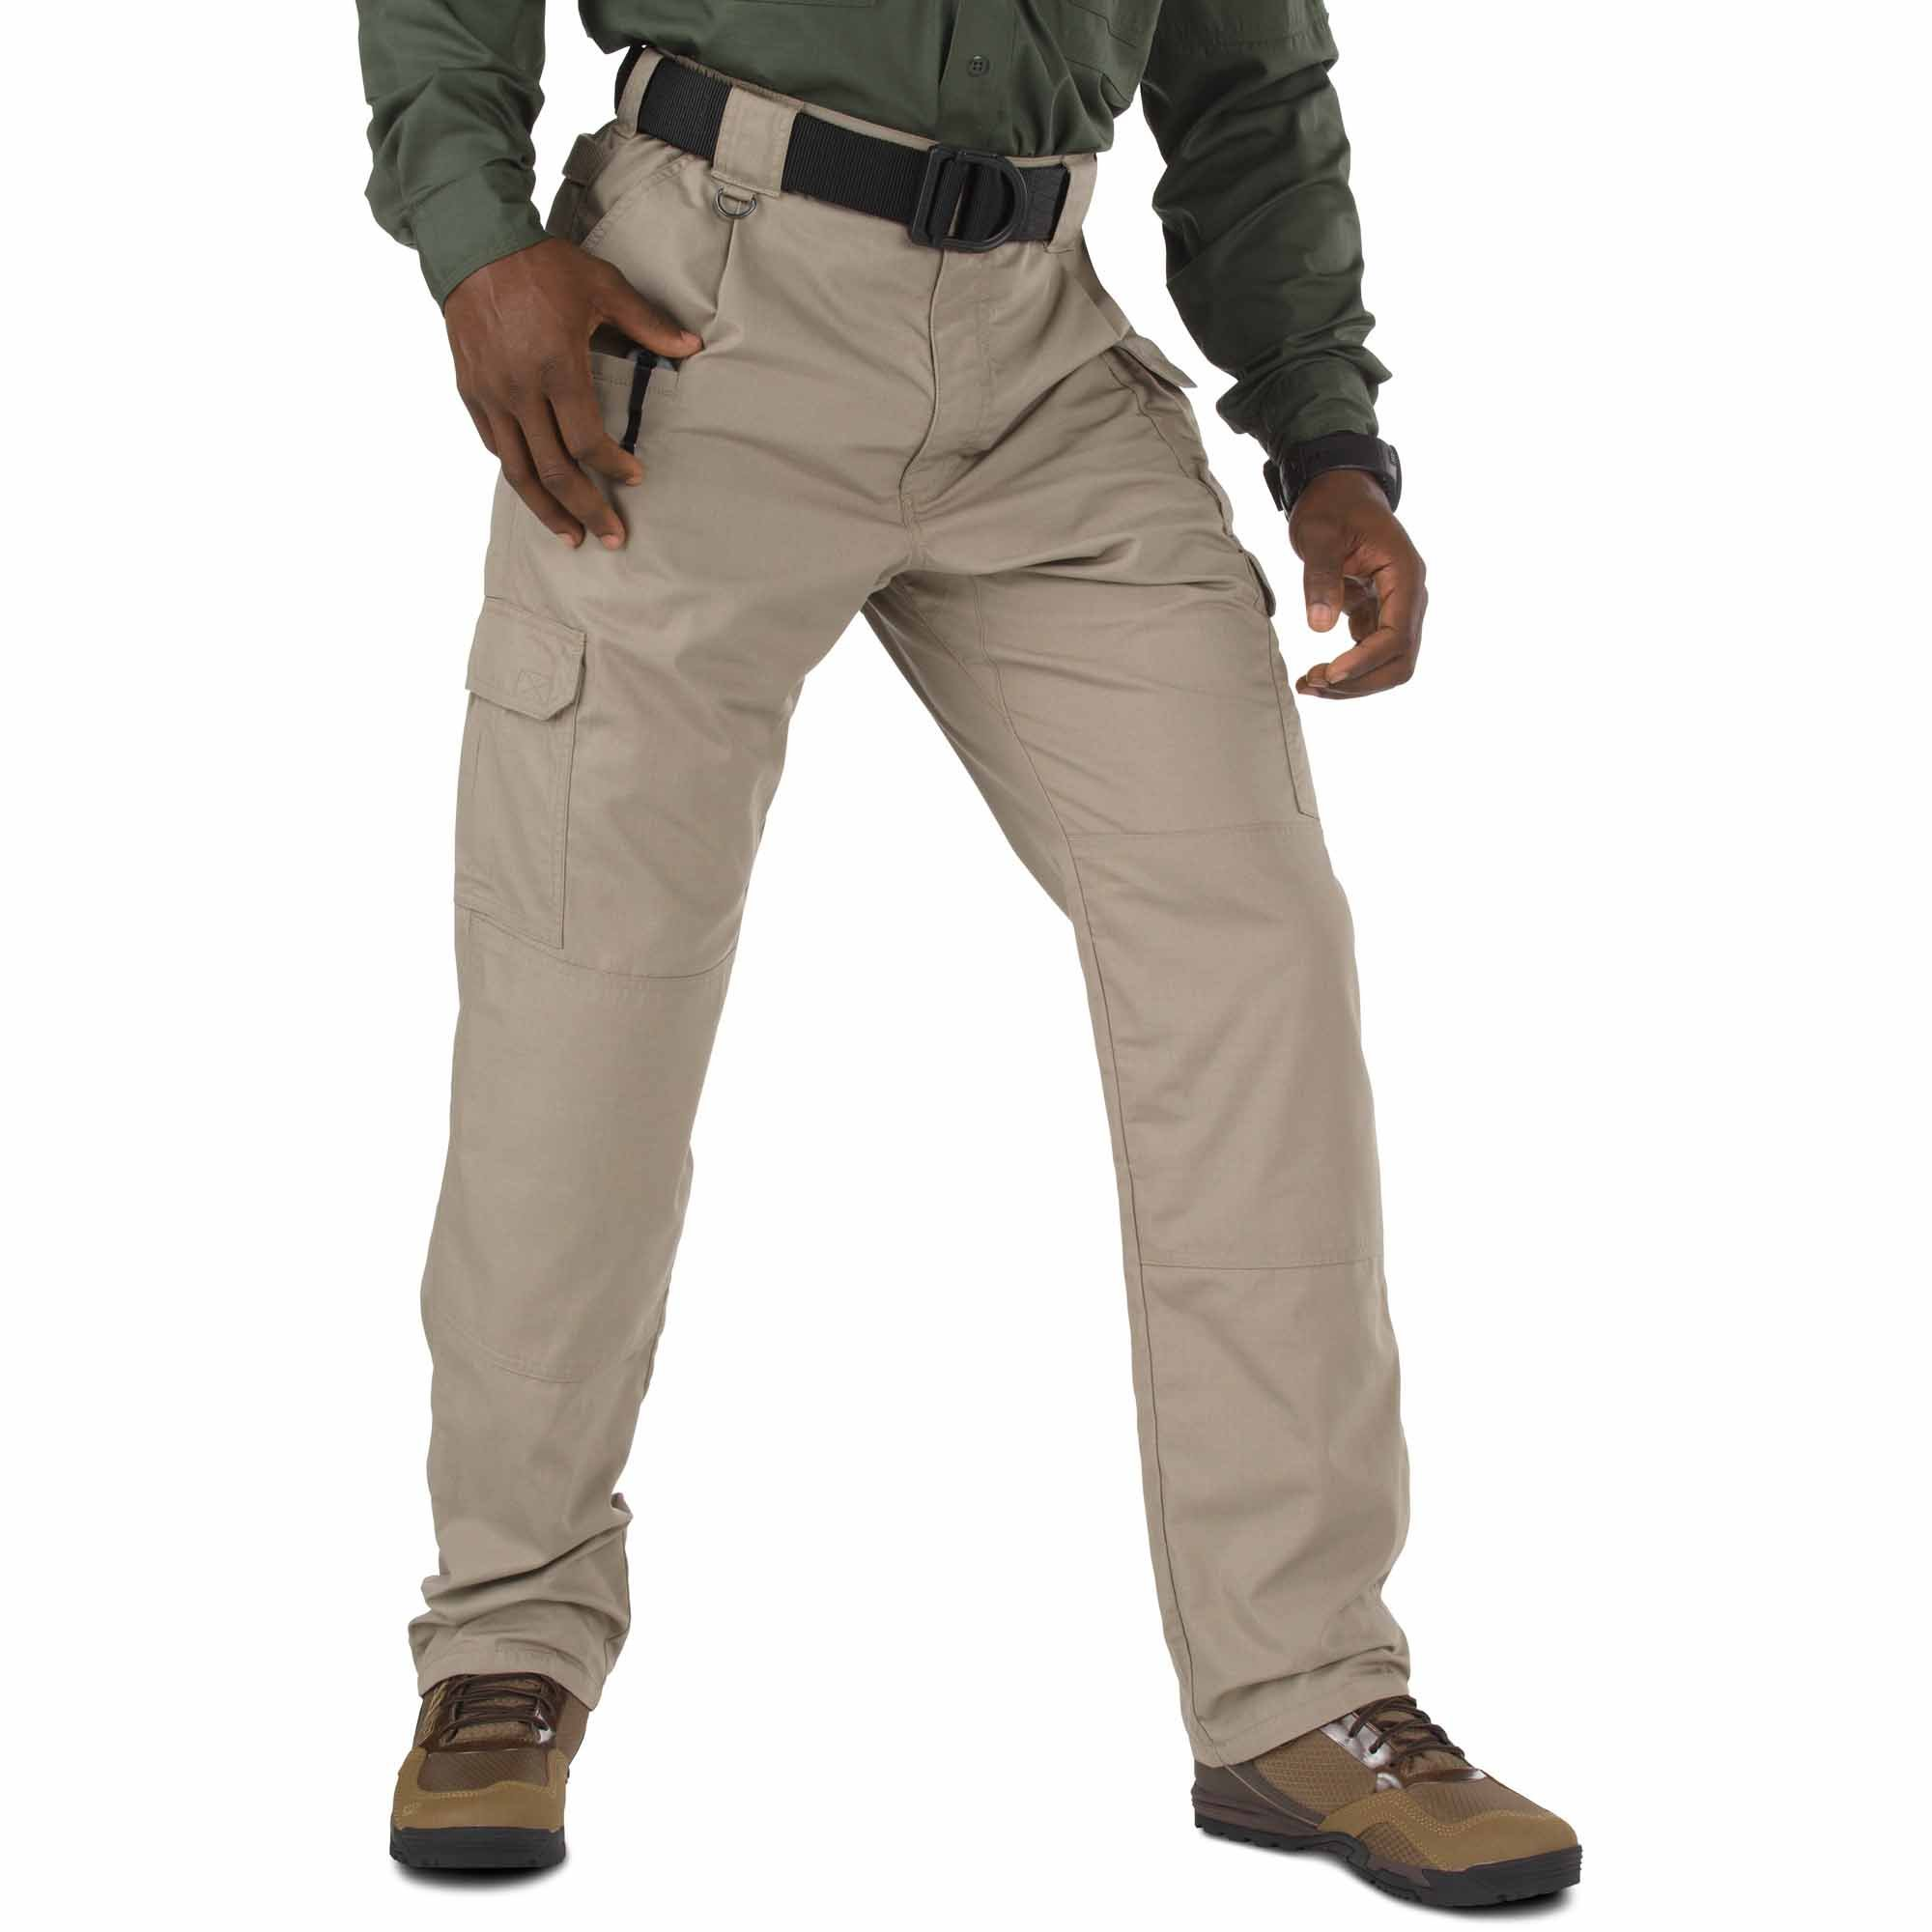 5.11 Men's TACLITE Pro Tactical Pants, Style 74273, Stone, 32Wx34L by 5.11 (Image #1)